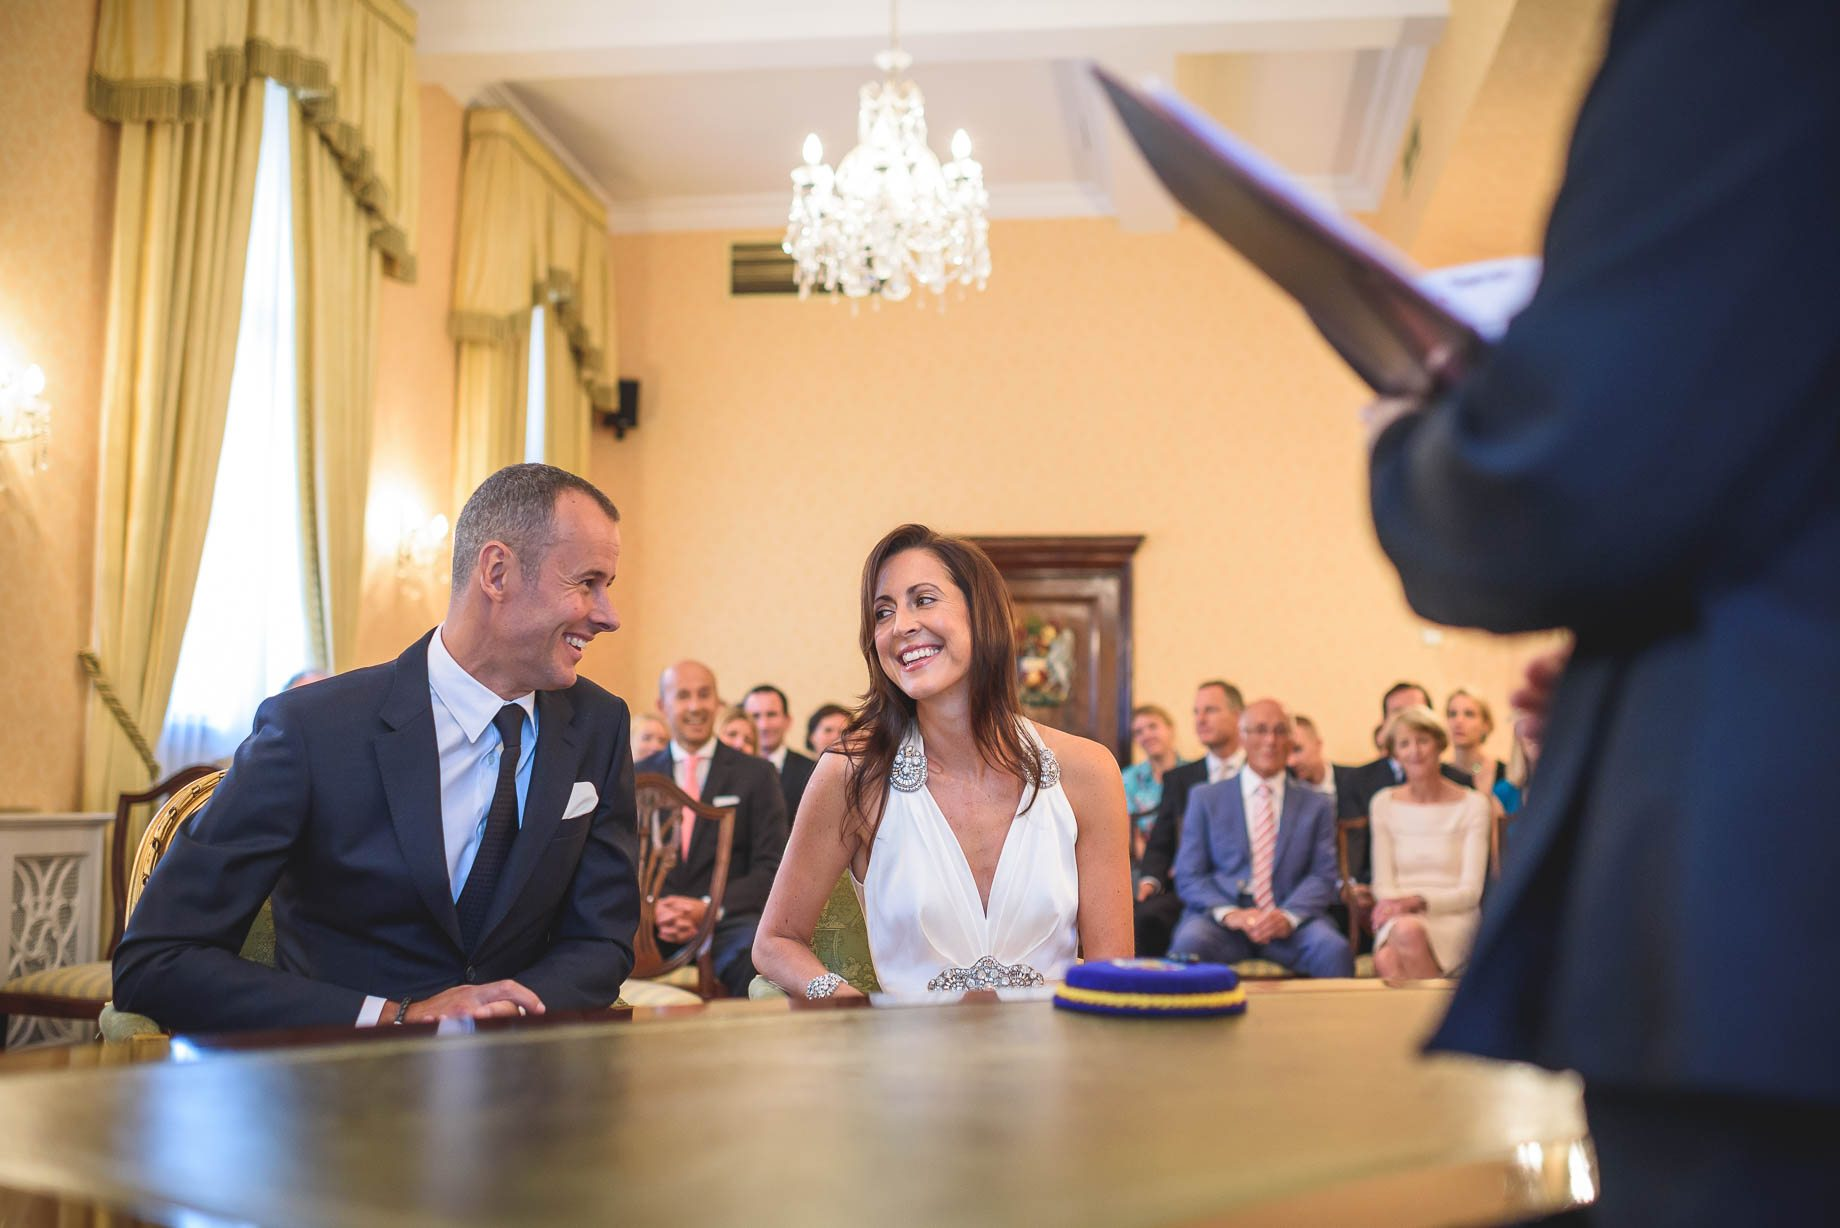 Chelsea-and-Mayfair-wedding-photography-Guy-Collier-Vicki-and-Damien-54-of-126